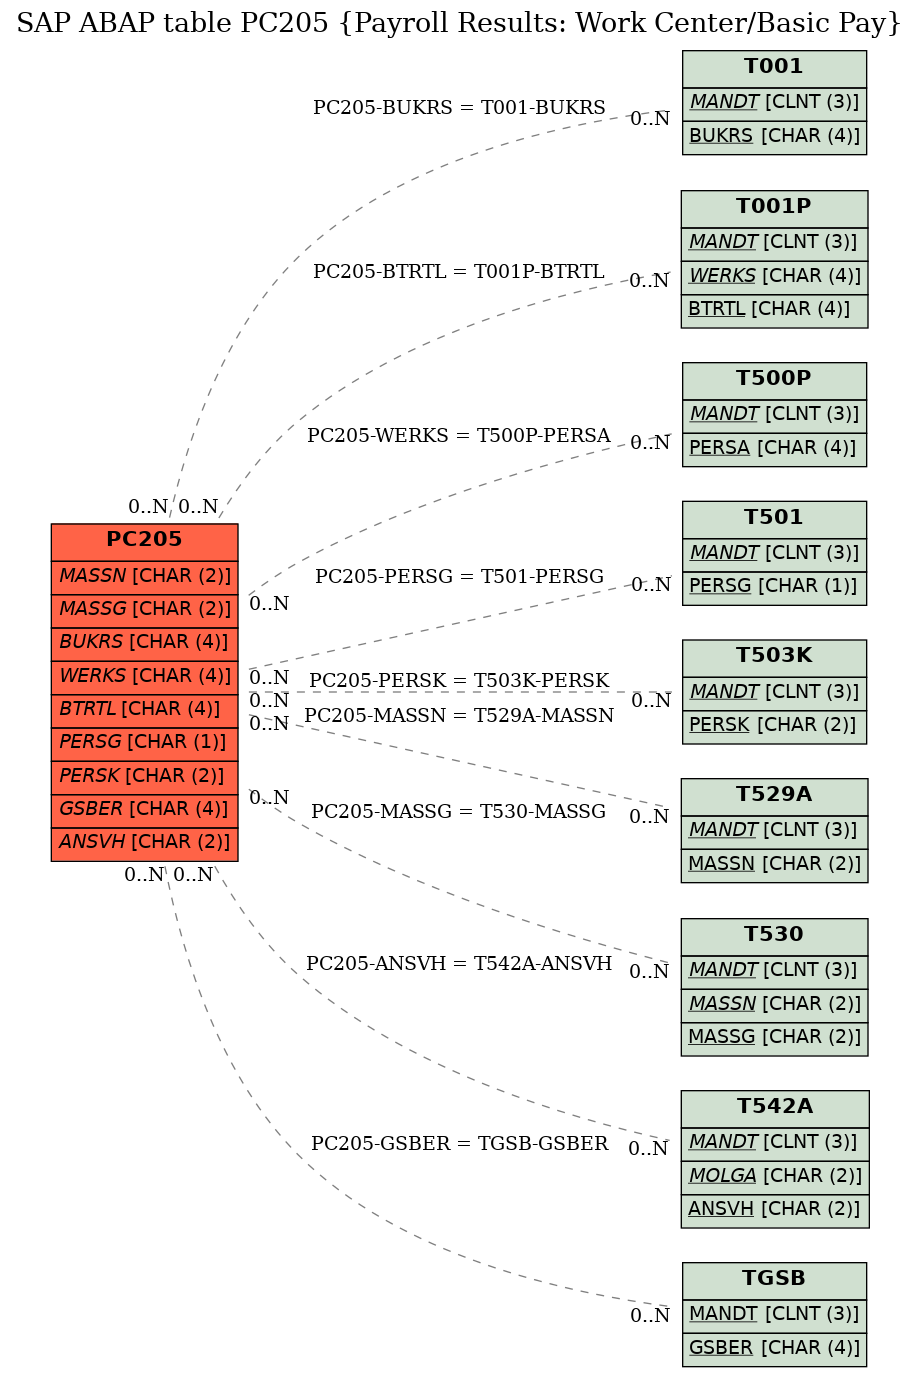 E-R Diagram for table PC205 (Payroll Results: Work Center/Basic Pay)